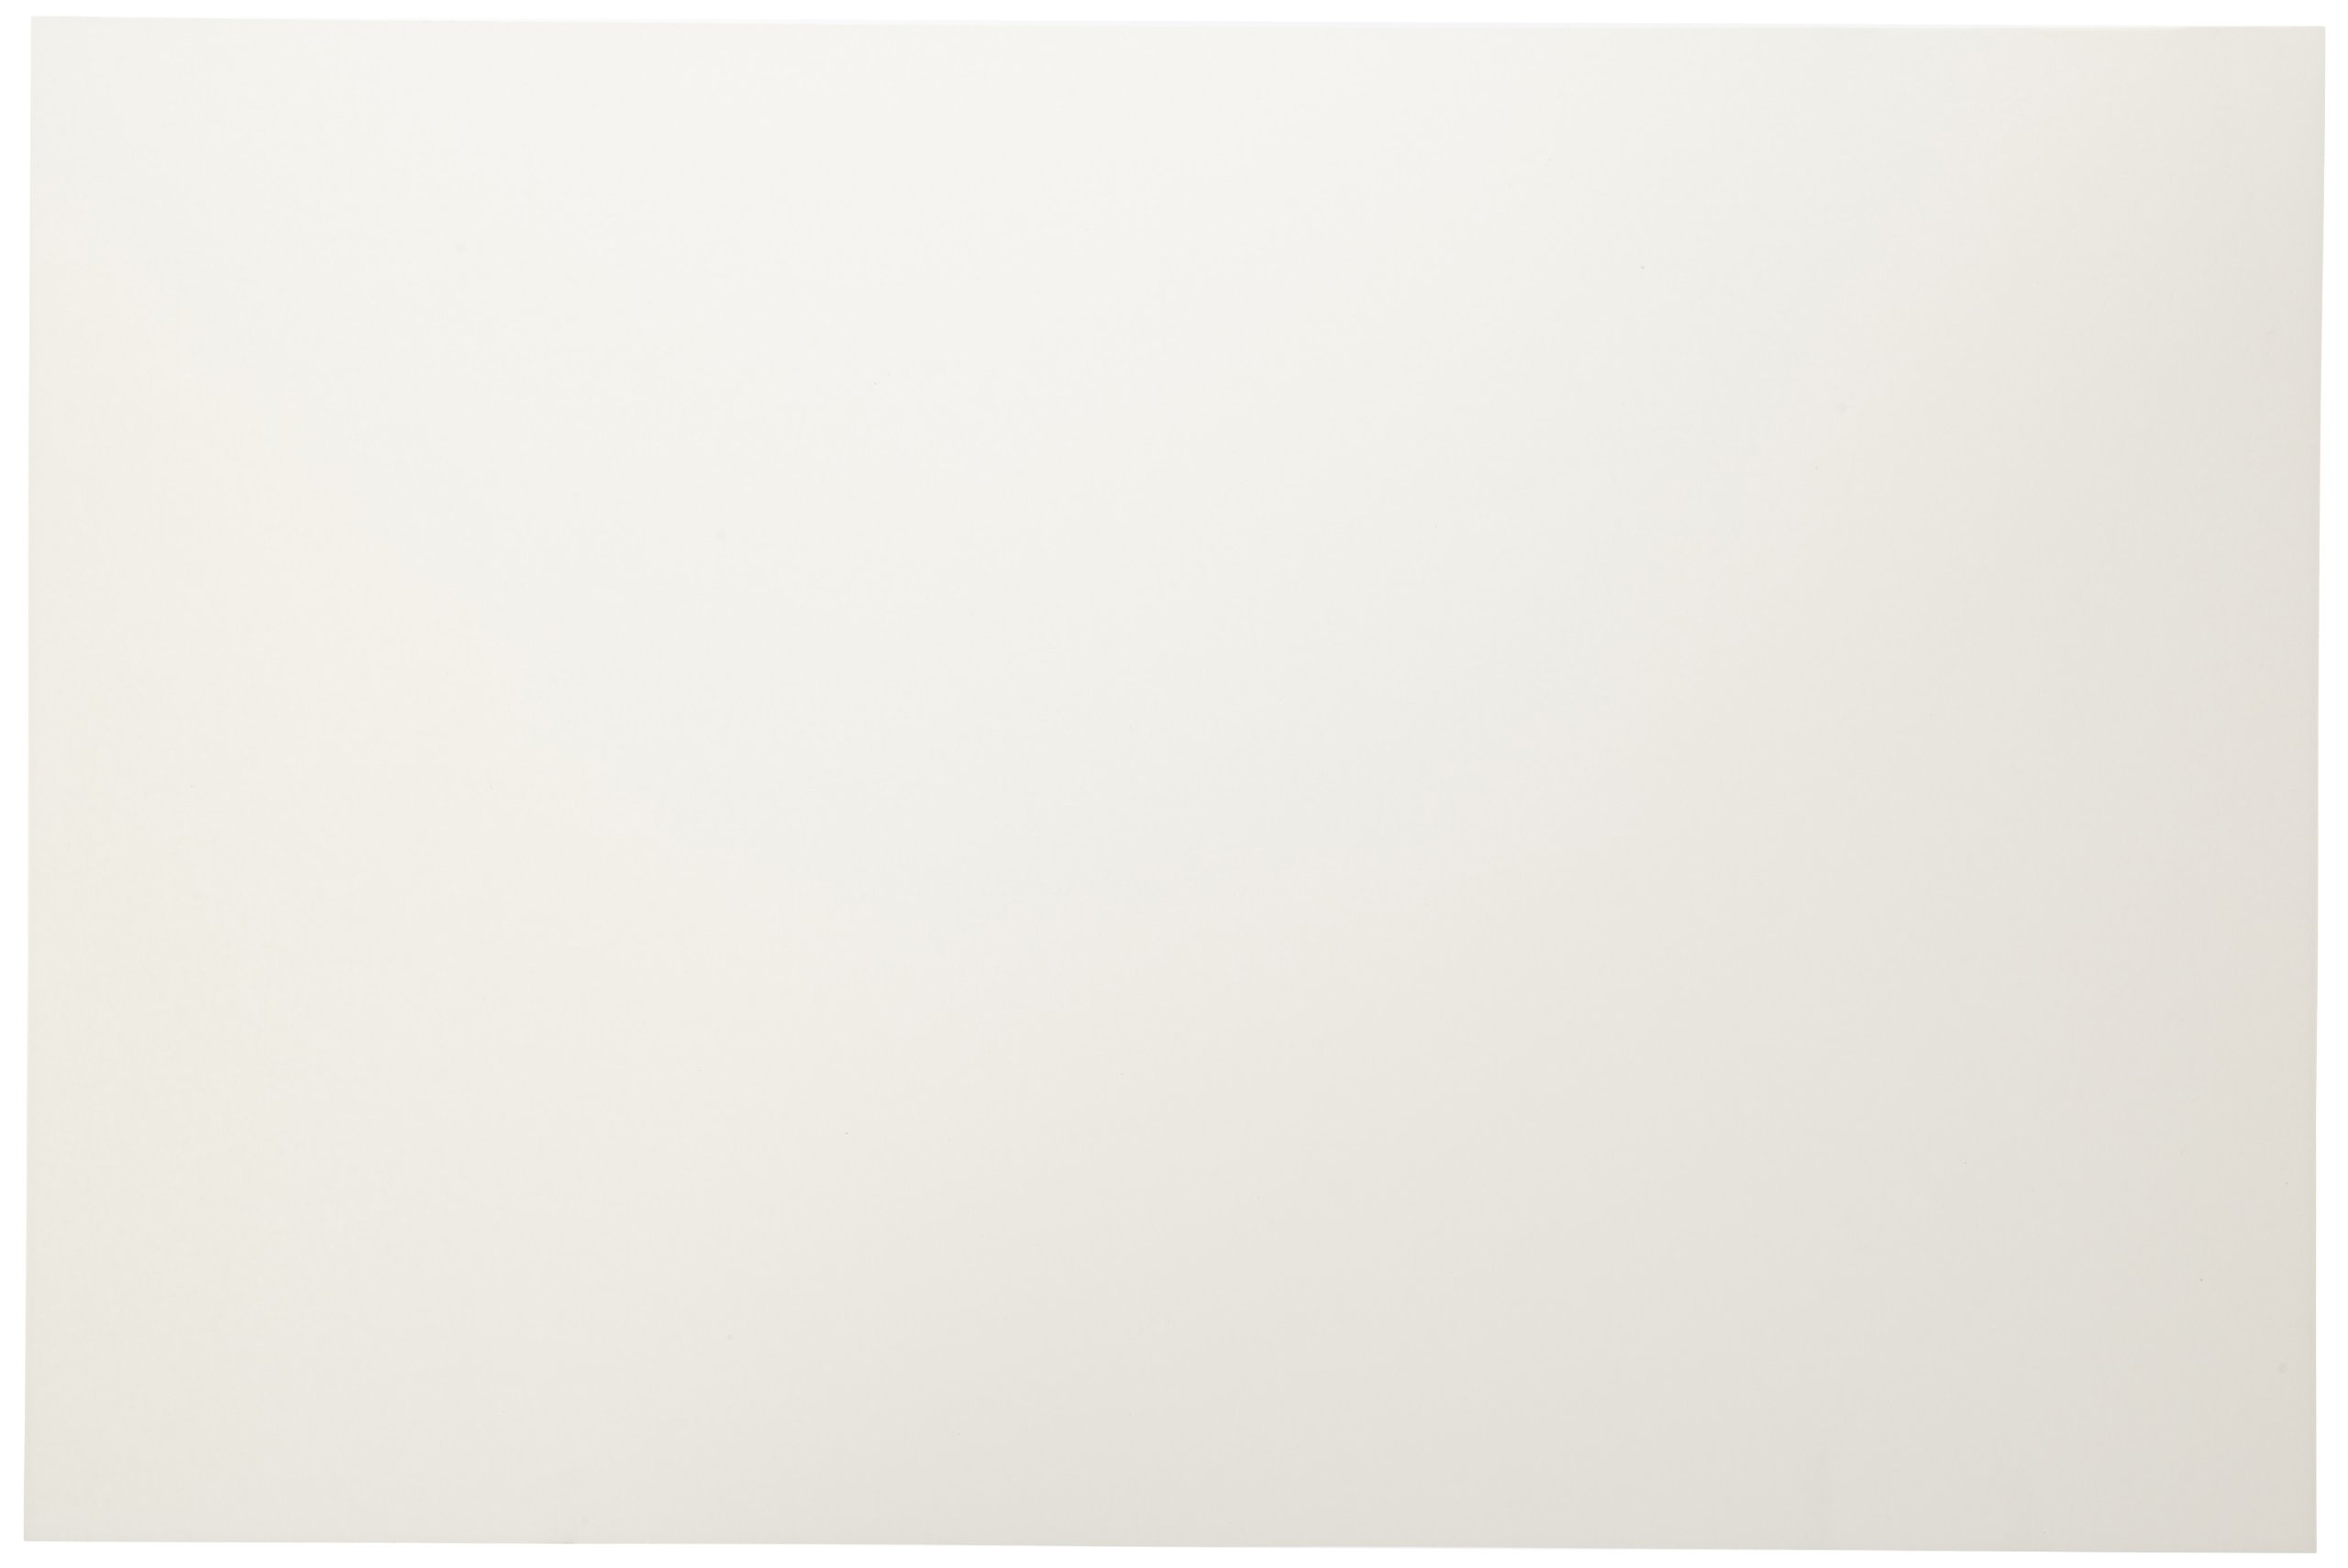 Sax Watercolor Paper, 24 x 36 Inches, 140 lb, Natural White, 100 Sheets